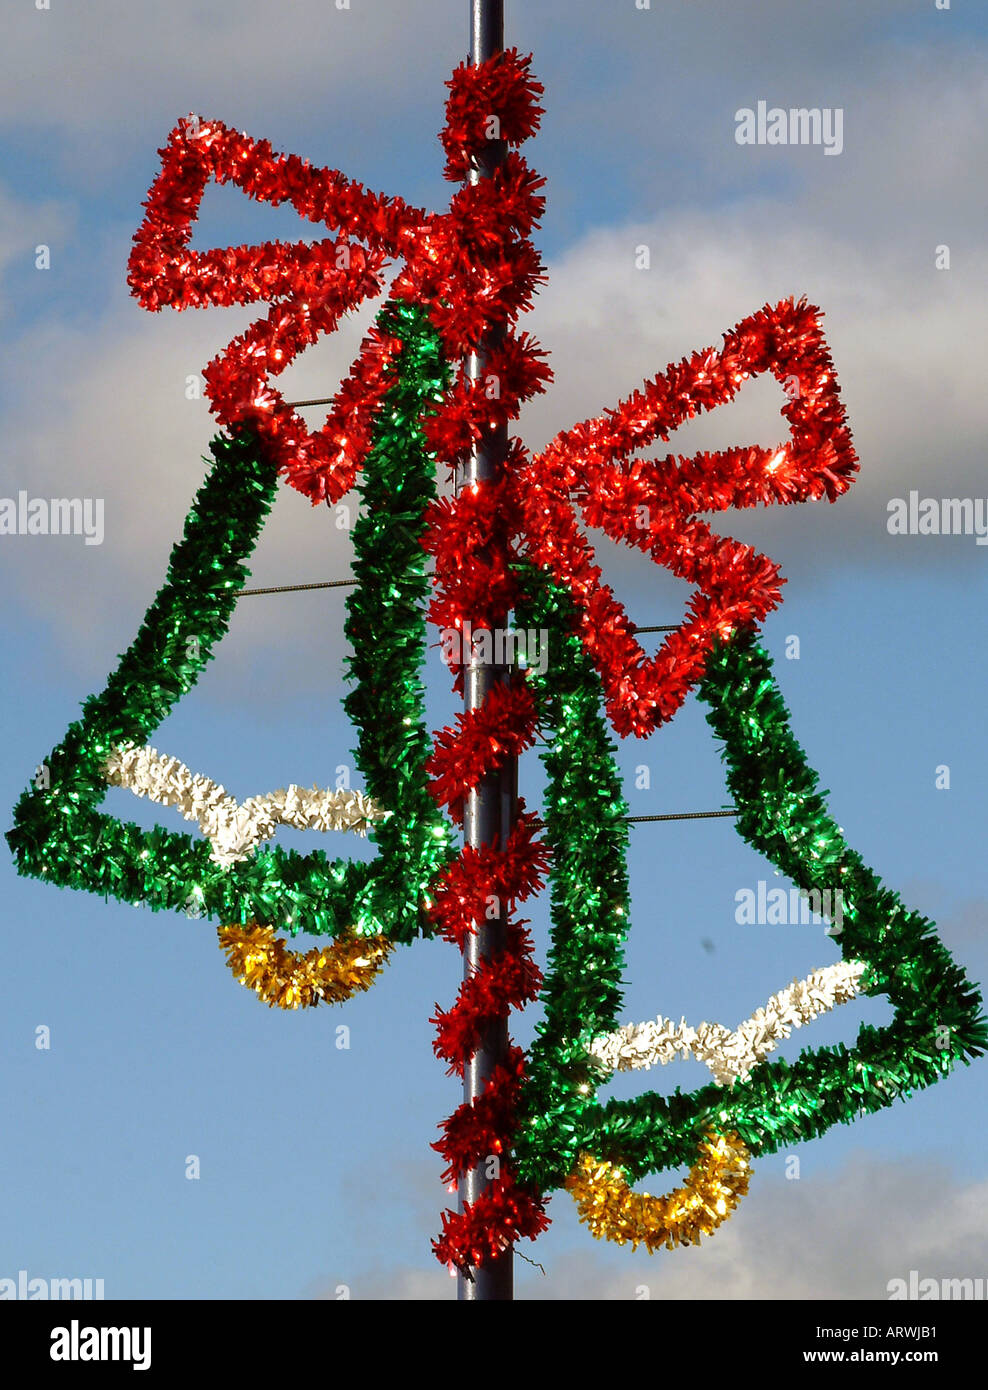 christmas decorations on a power pole in a shopping center stock image - Christmas Pole Decorations